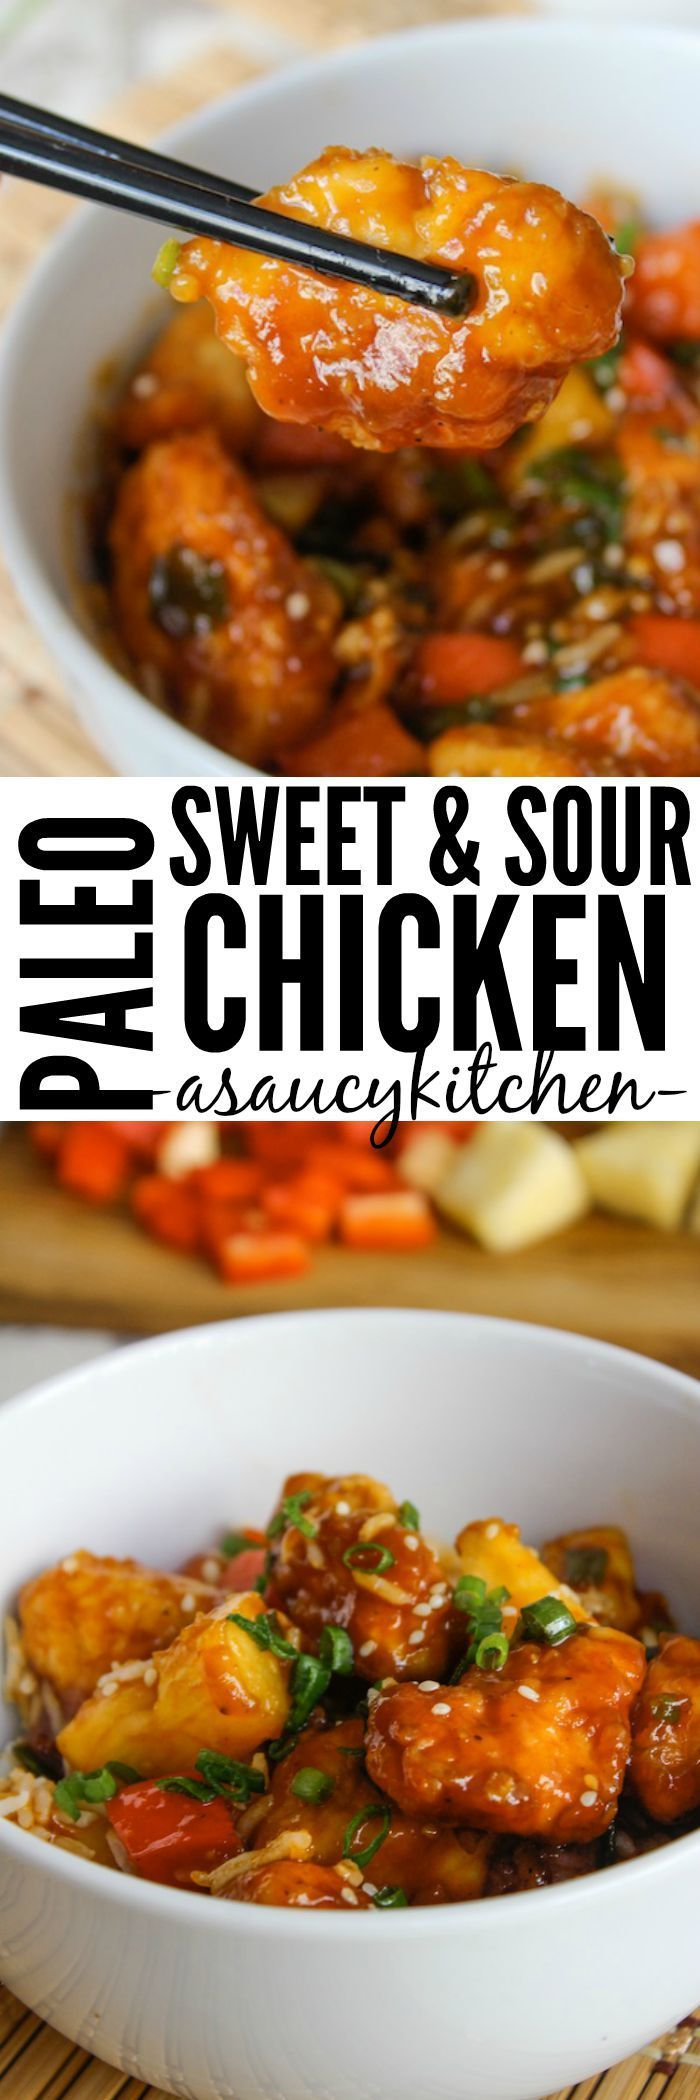 Our family loved this!!! I didn't use egg, but coated the chicken with cornstarch. Fried the chicken in batches, then simmered the chicken in the sauce, with the pineapple. Amazing!!!